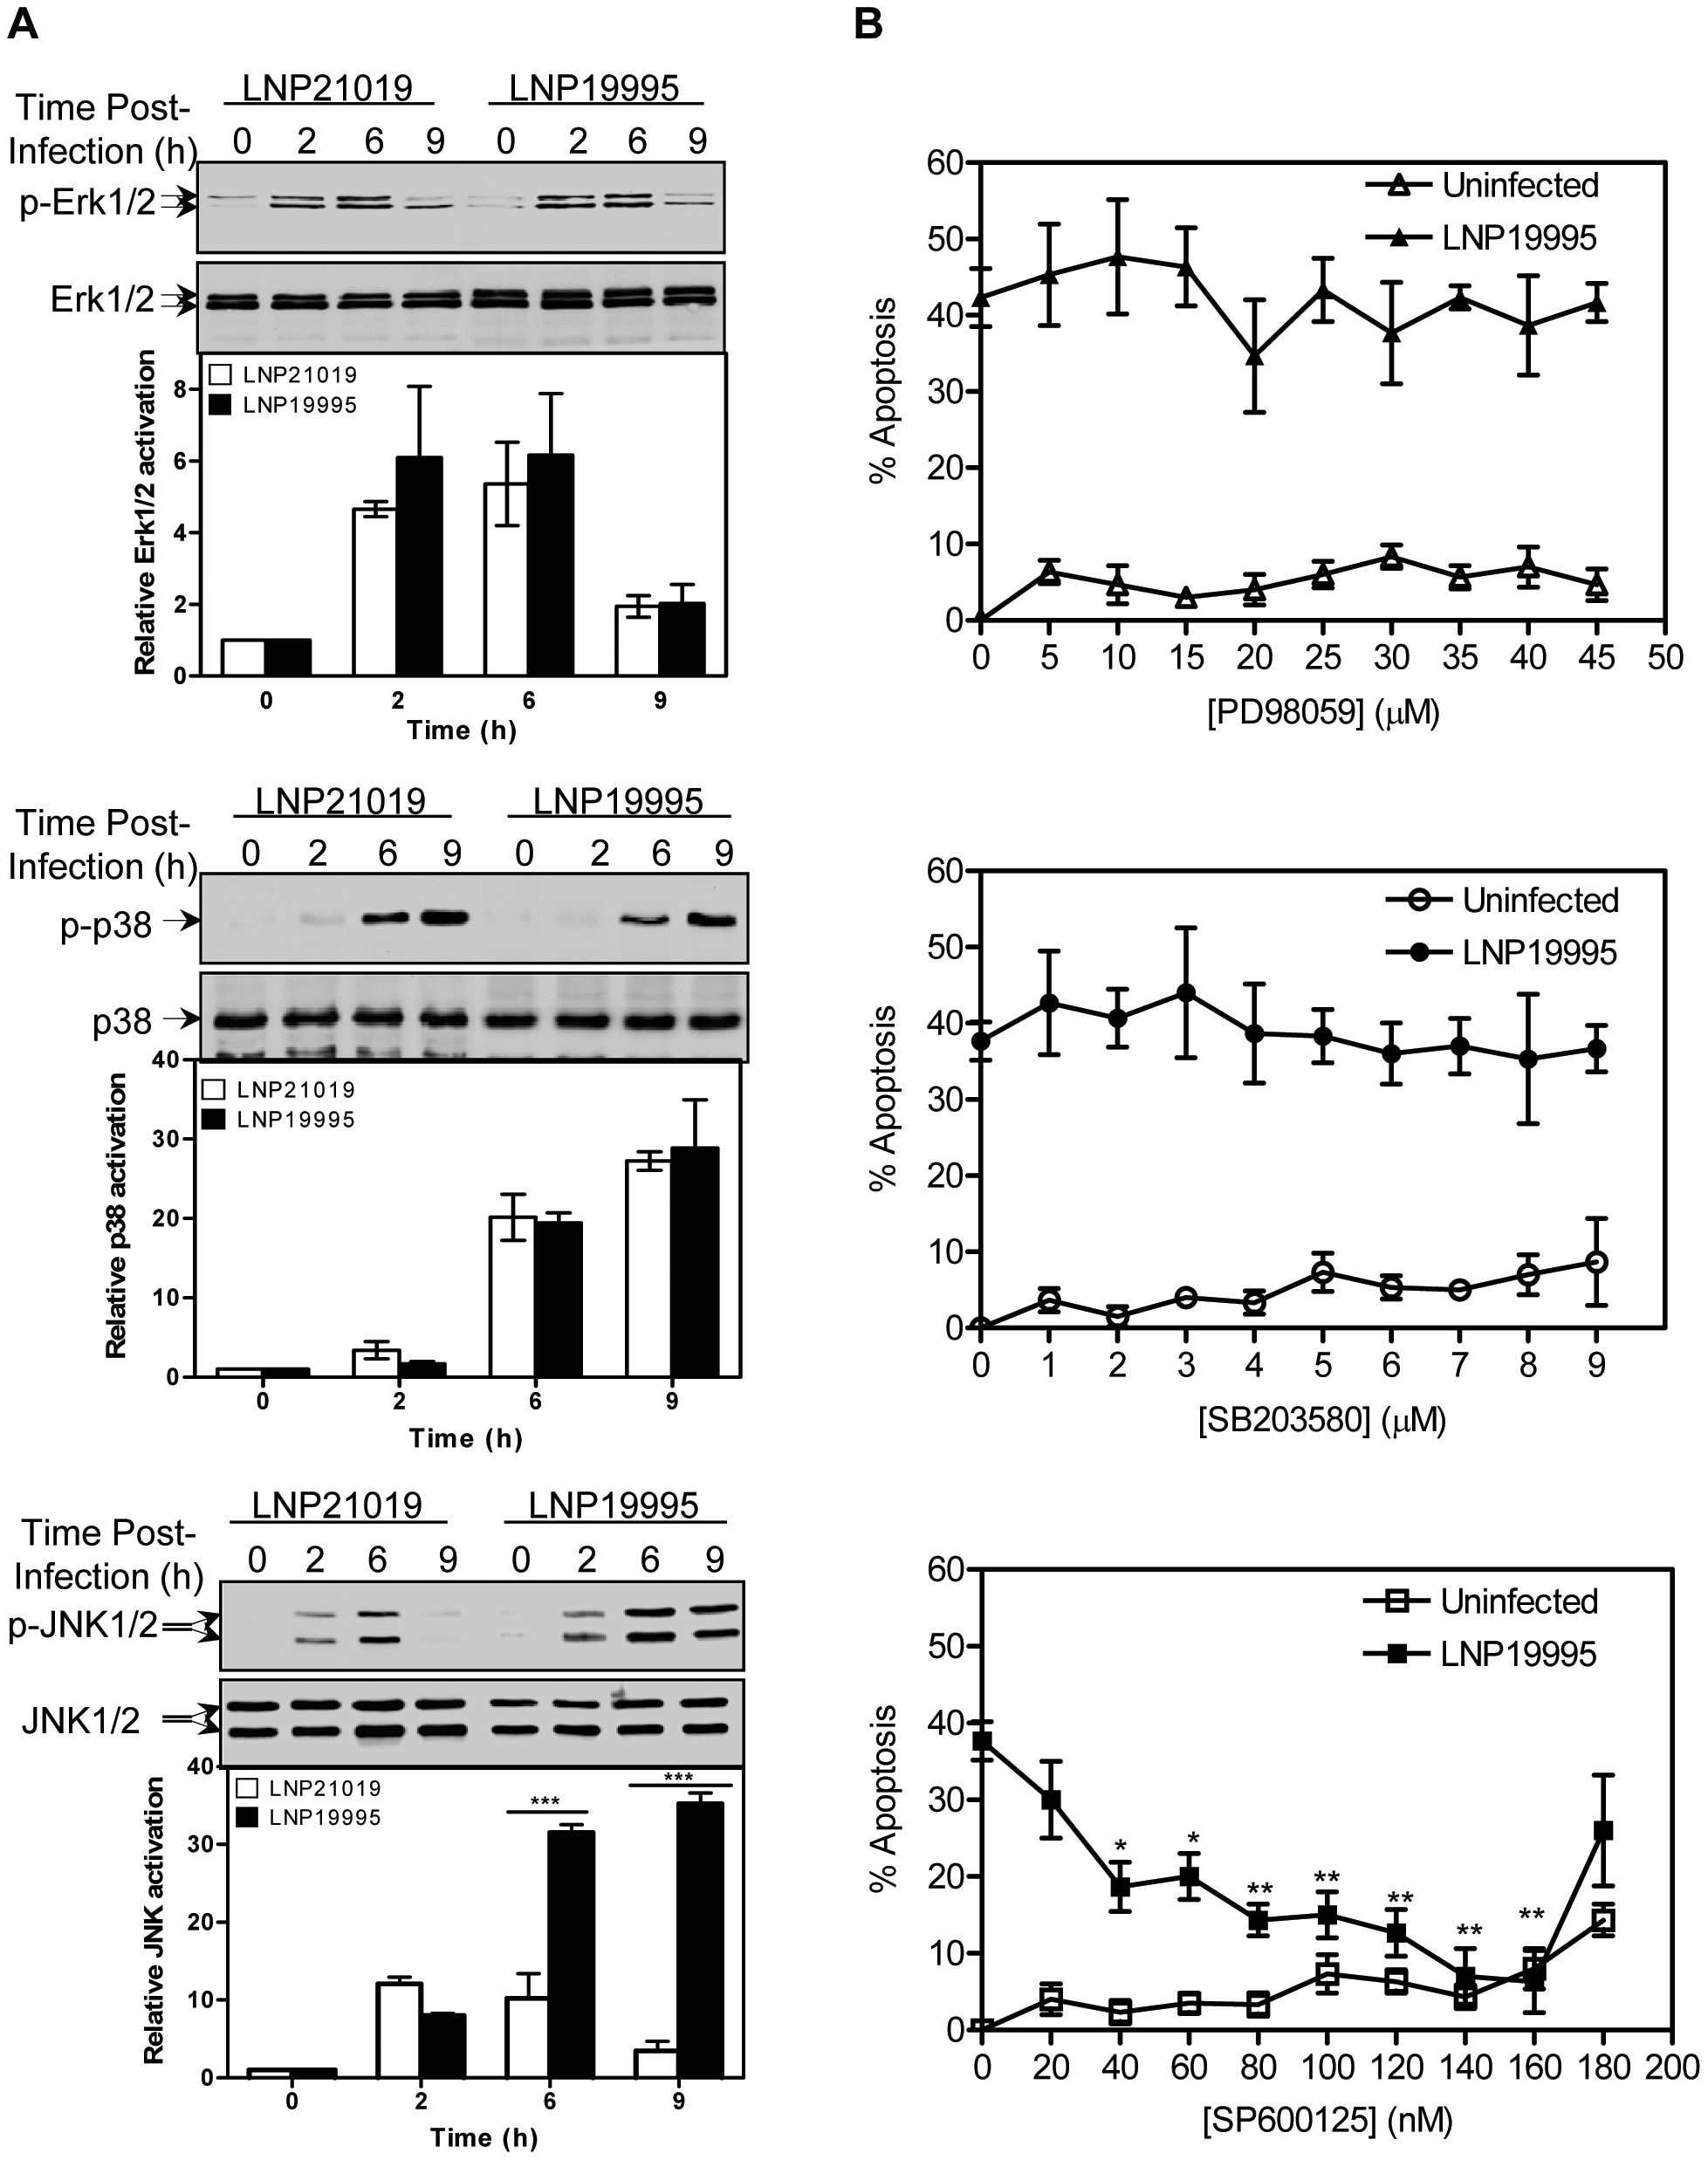 Role of MAPK in apoptosis of Hec-1B cells induced by the ST-11 isolates.